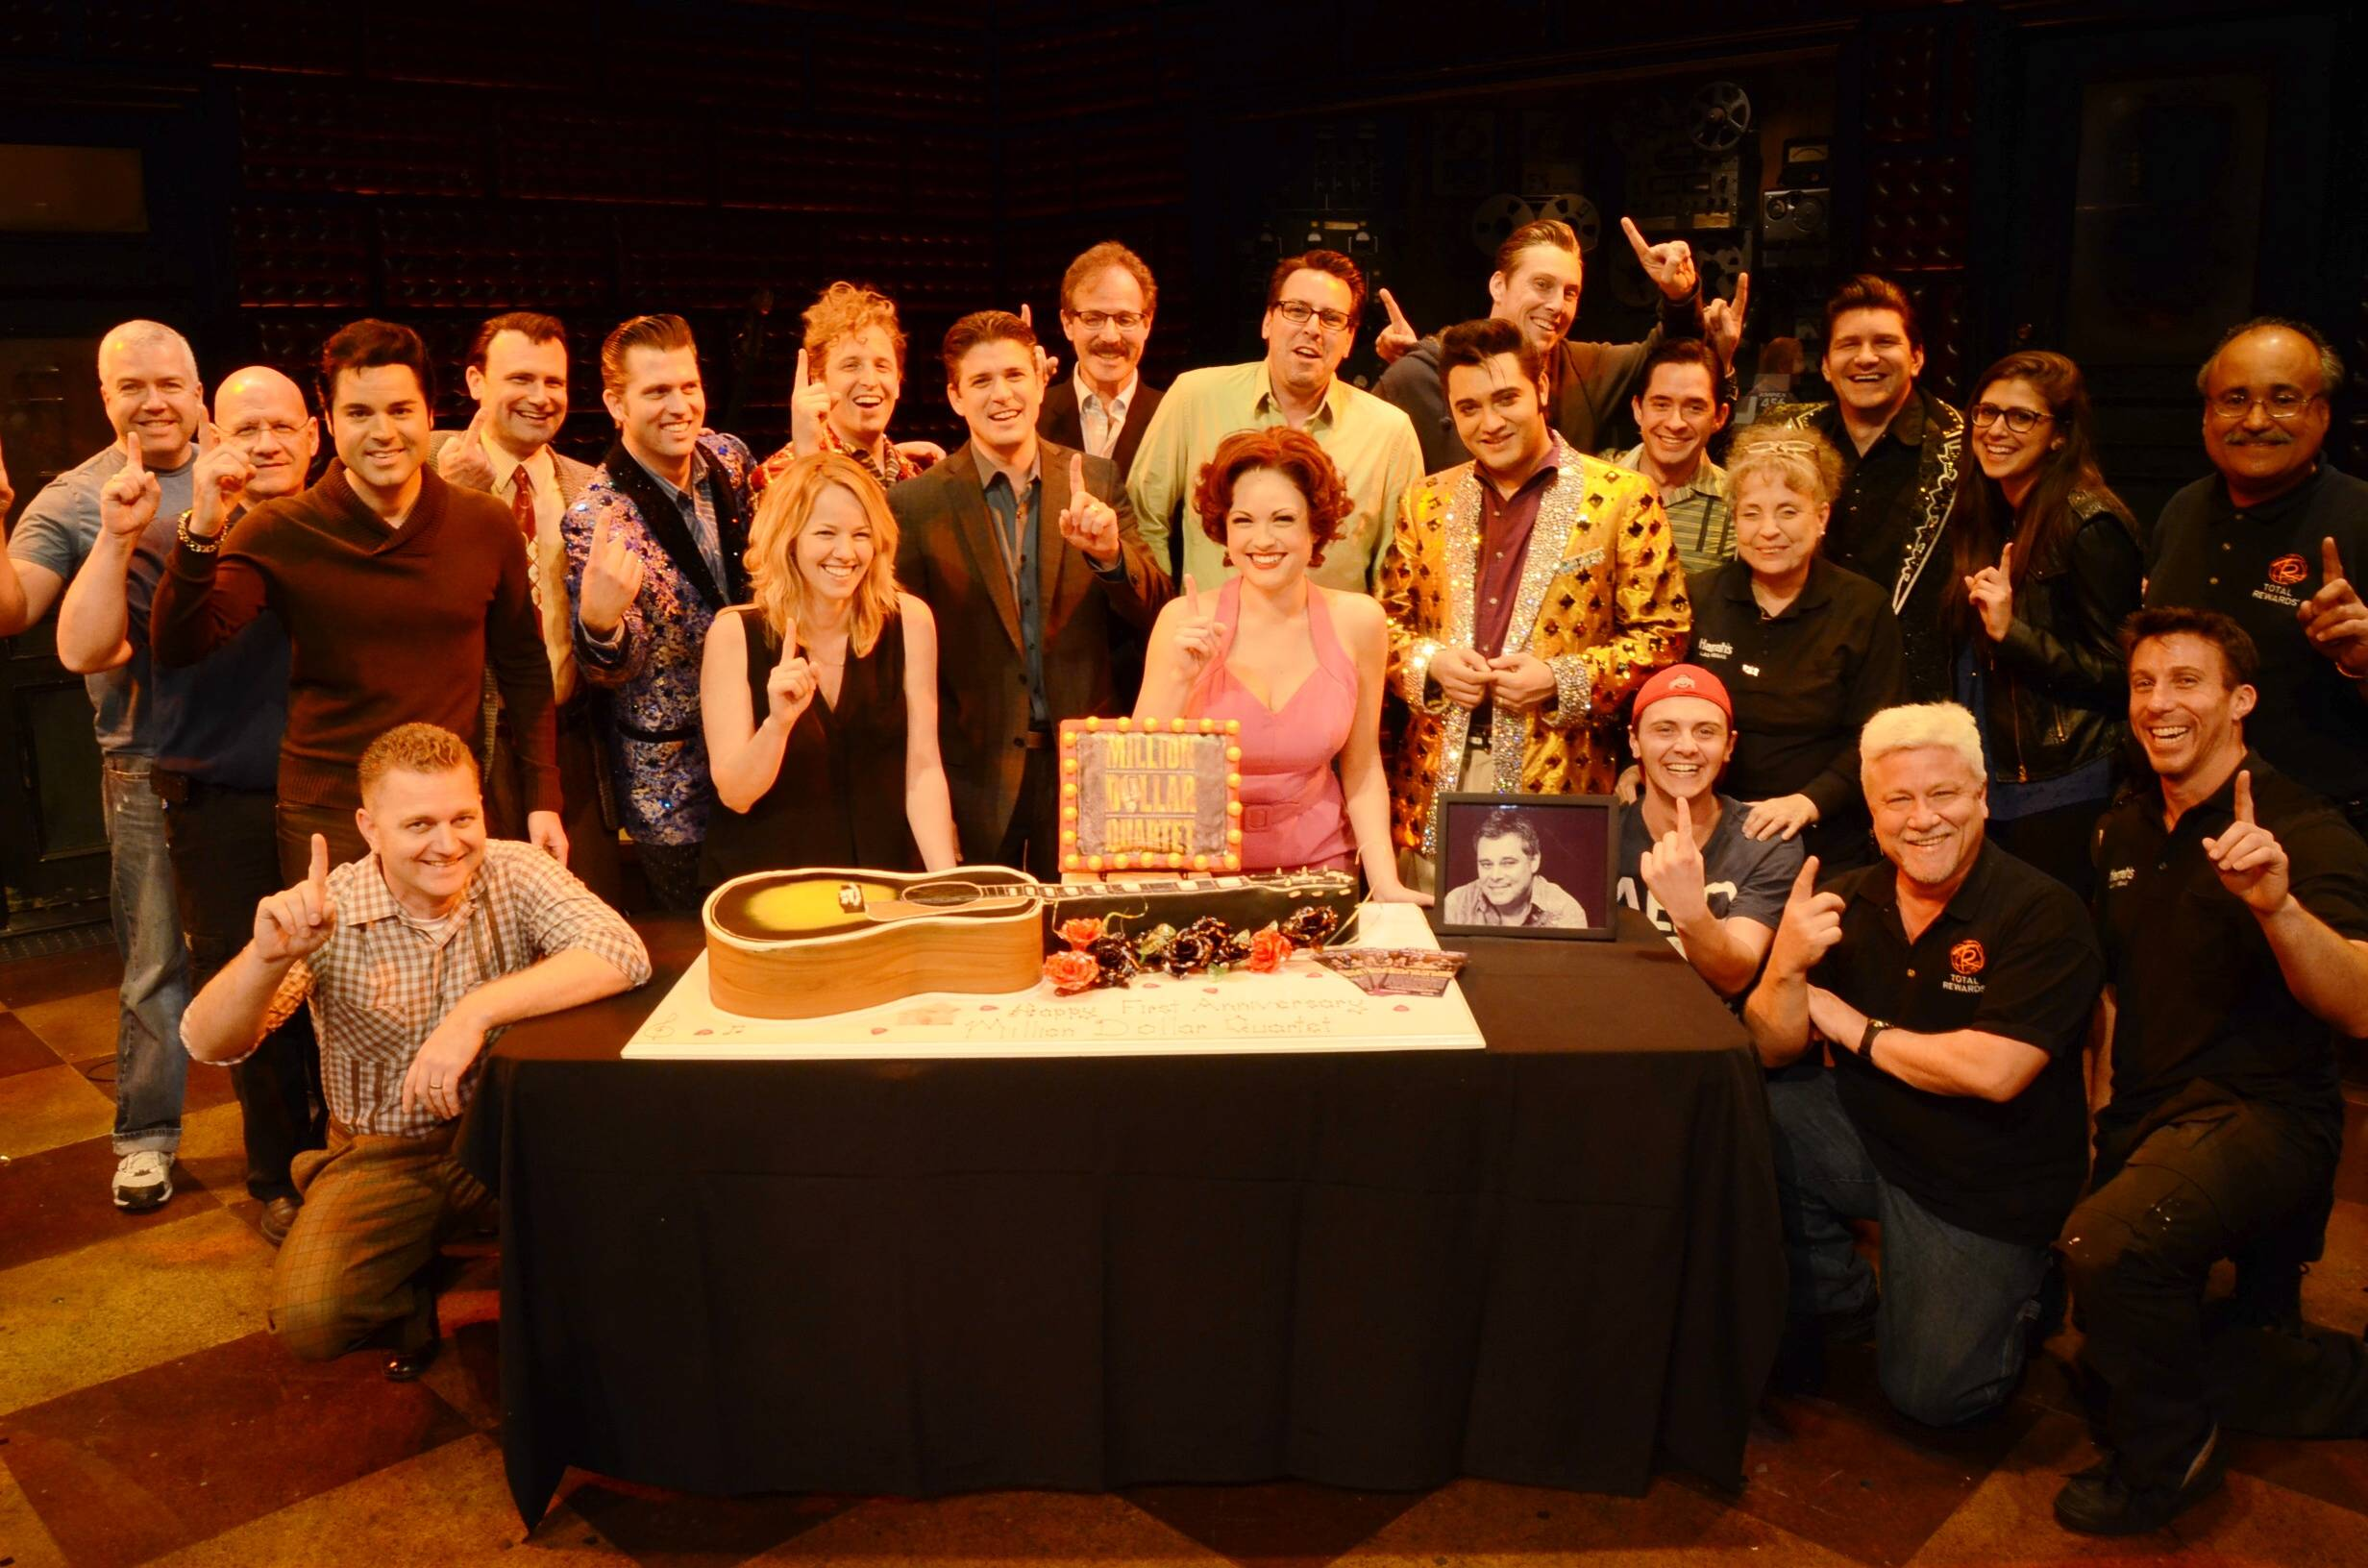 Full Million Dollar Quartet Las Vegas Company 2; First Anniversary 2.19.14 ©Caesars Entertainment